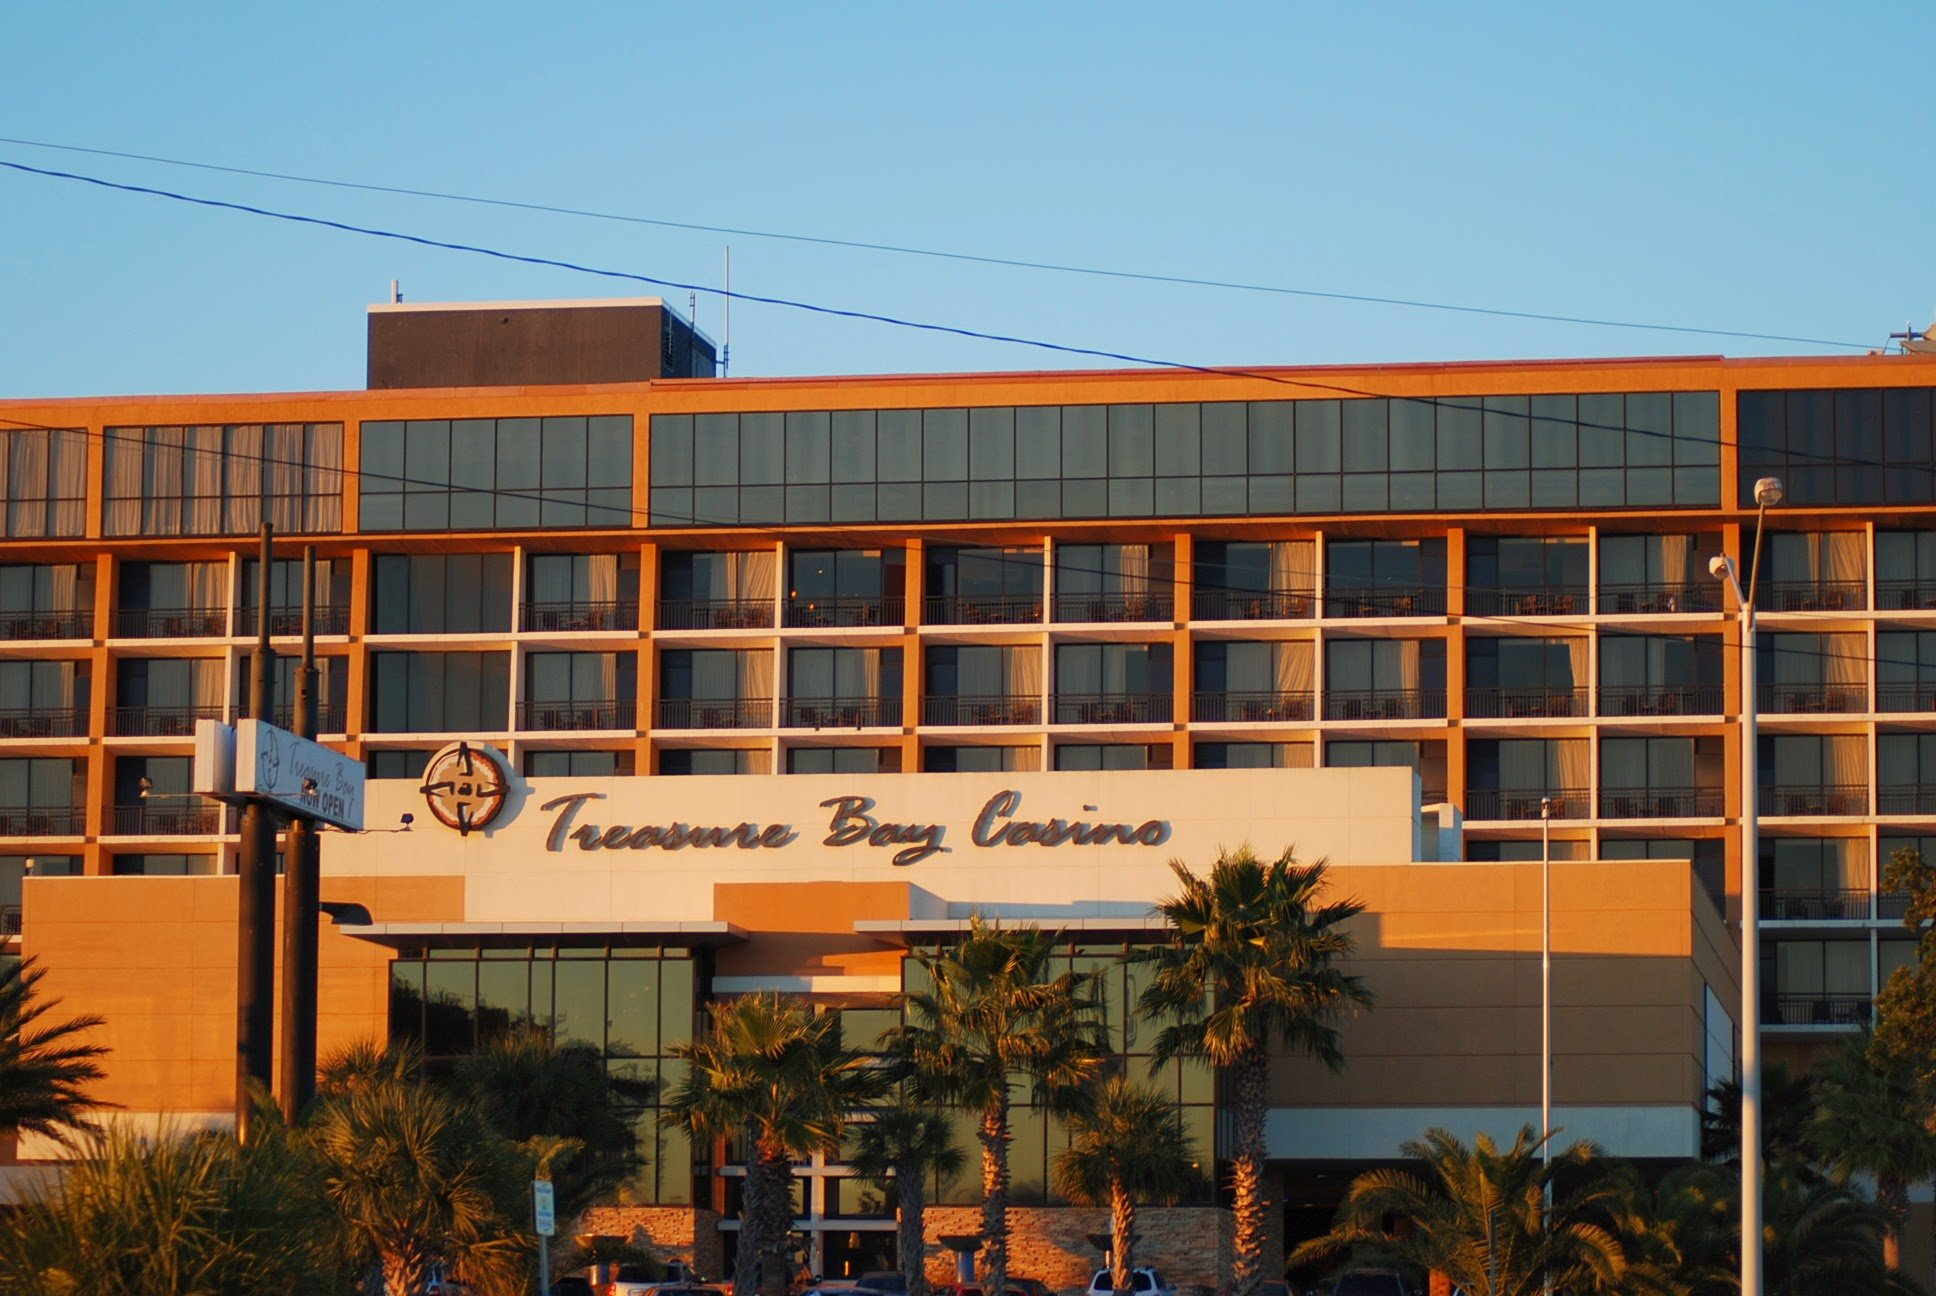 Treasure bay casino cq